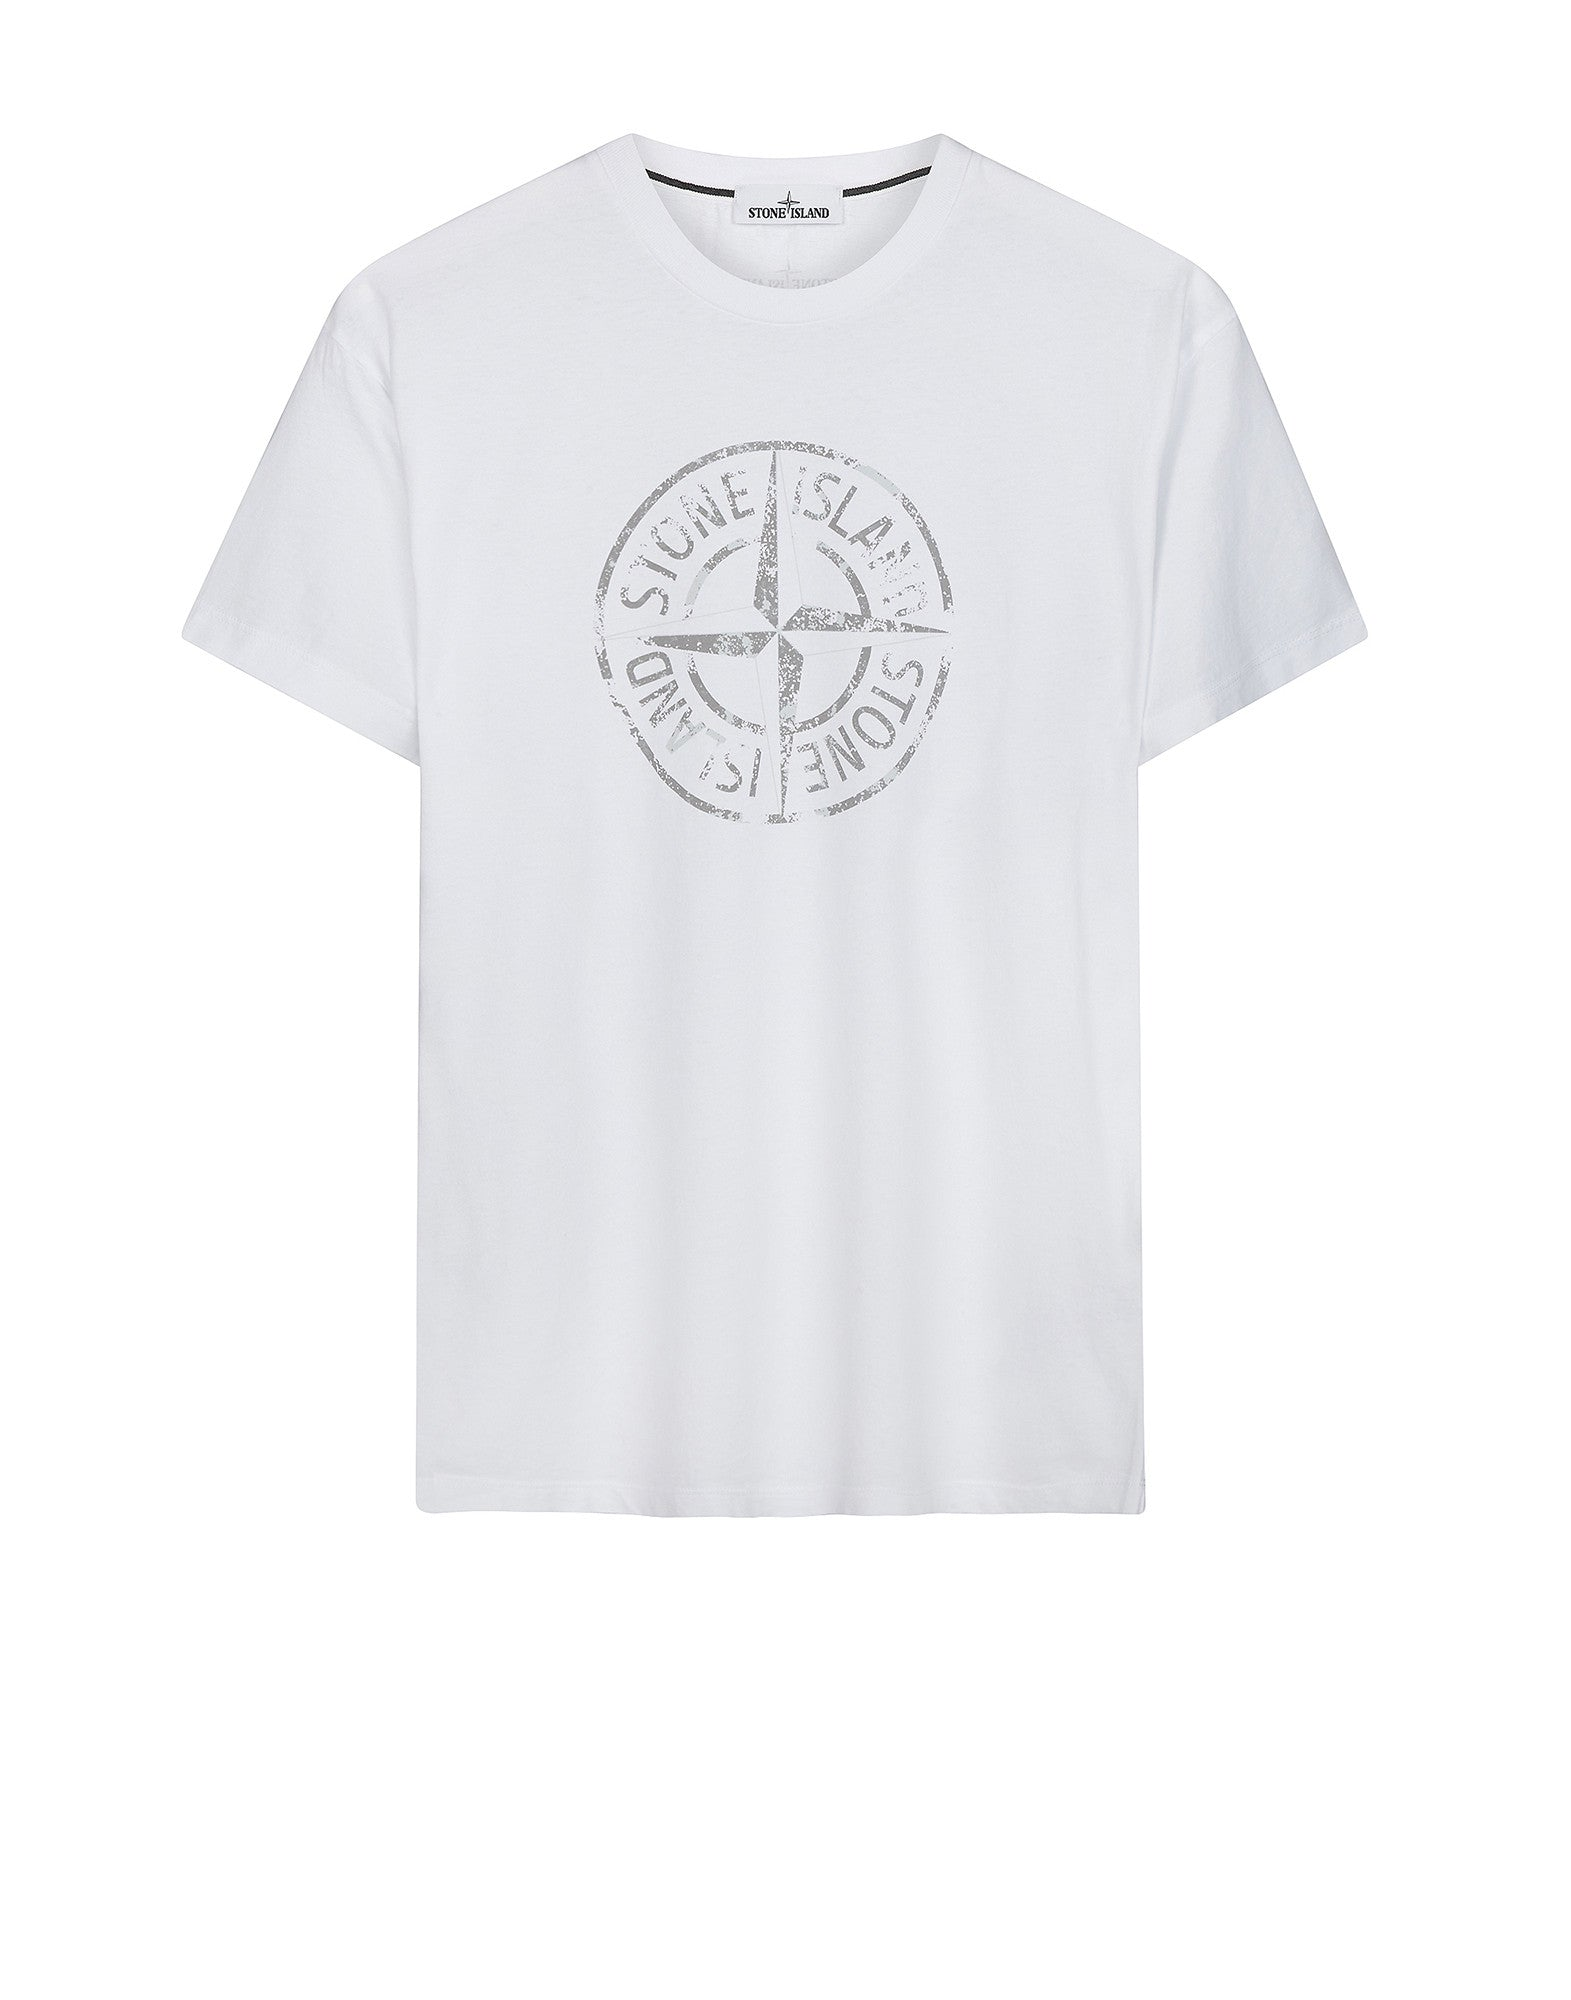 2NS87 'STONE ISLAND' T-Shirt in White